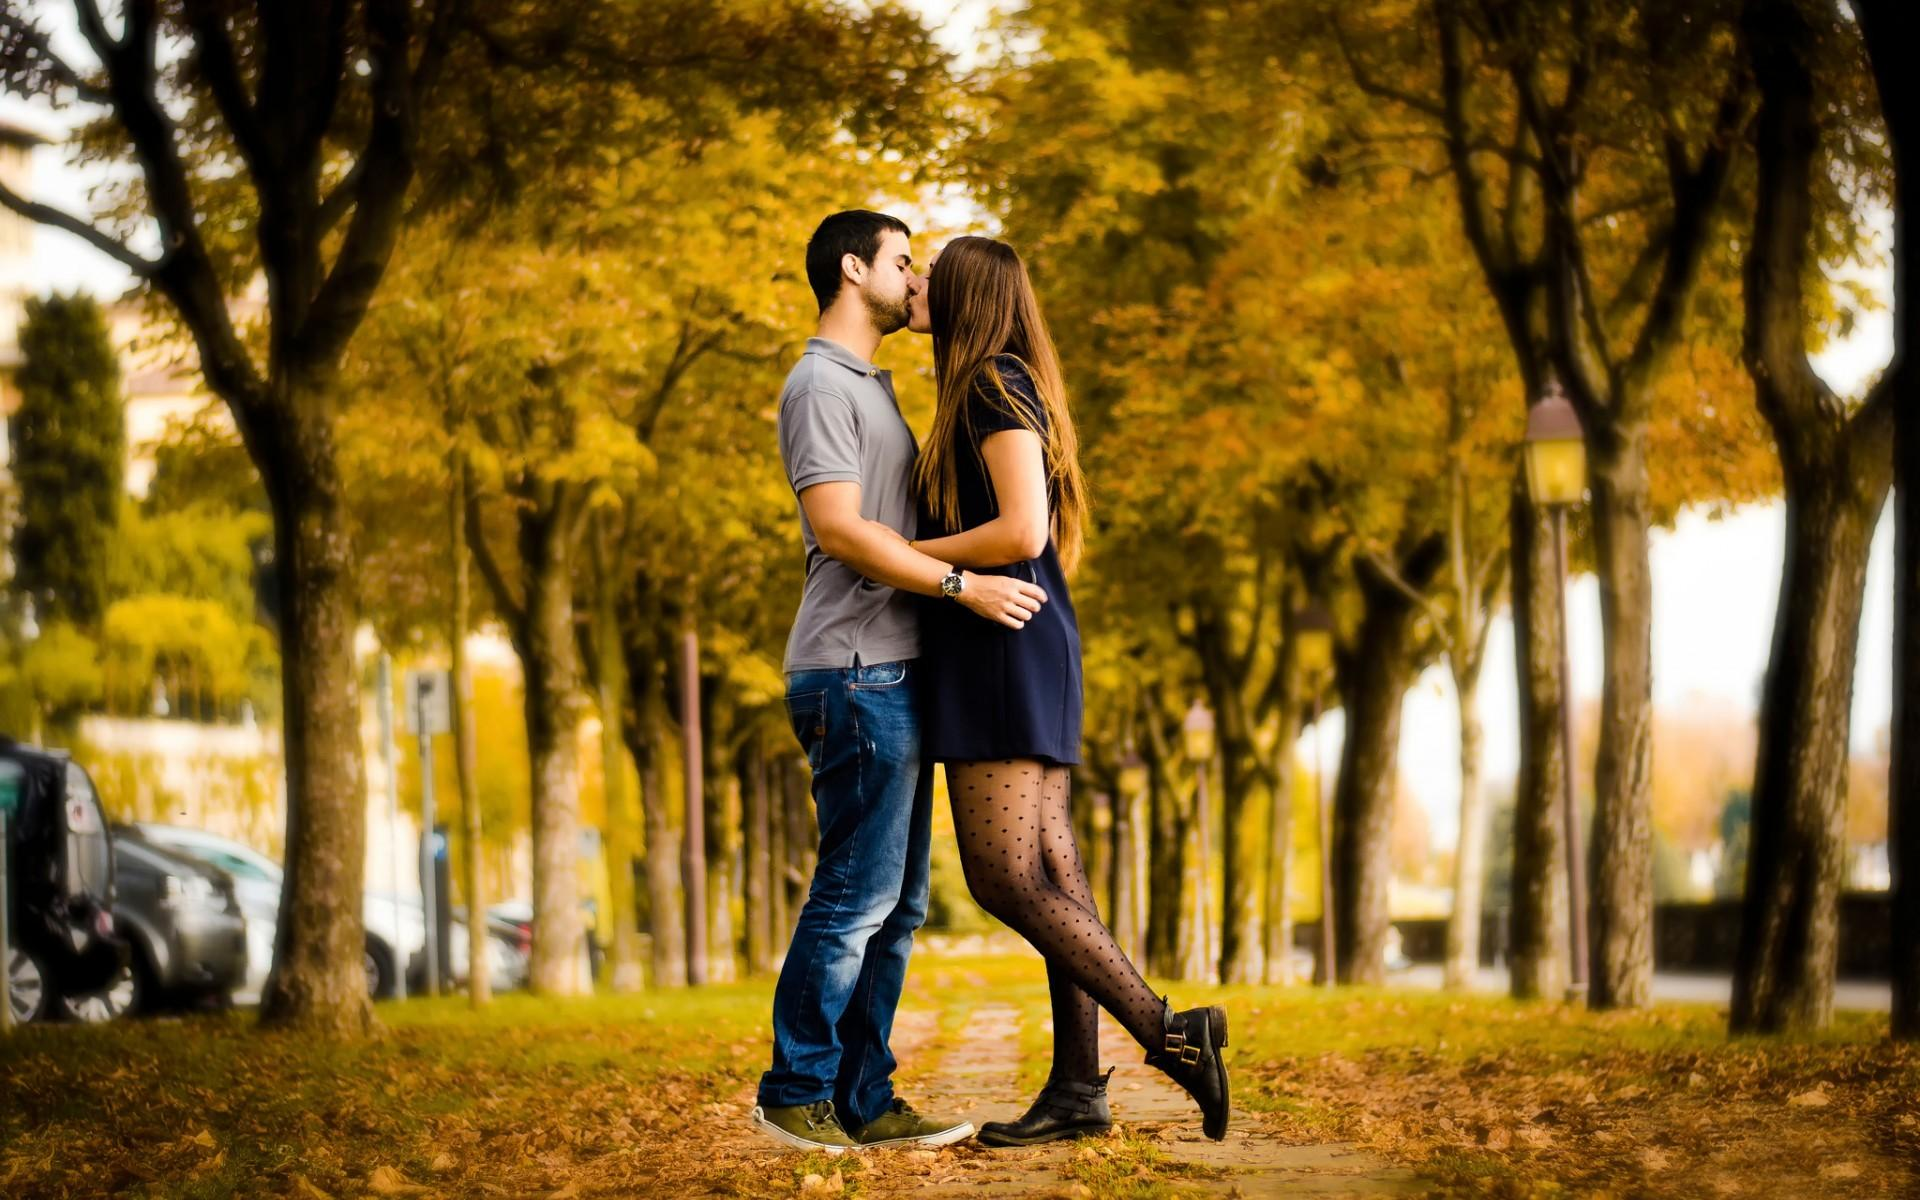 Hd Couple Photography Wallpapers Wallpaper Cave